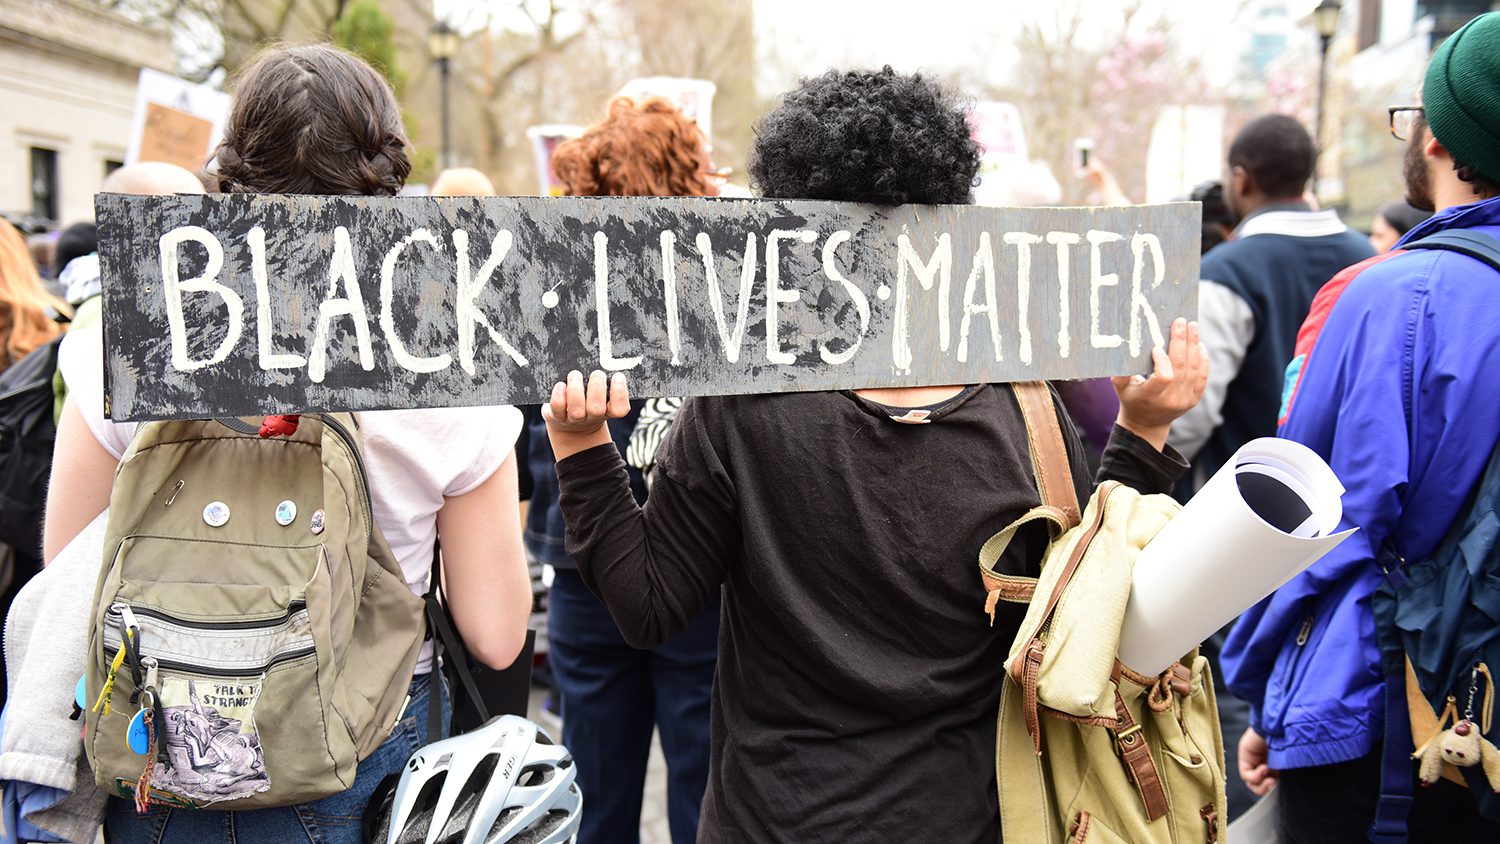 Students with Black Lives Matter sign